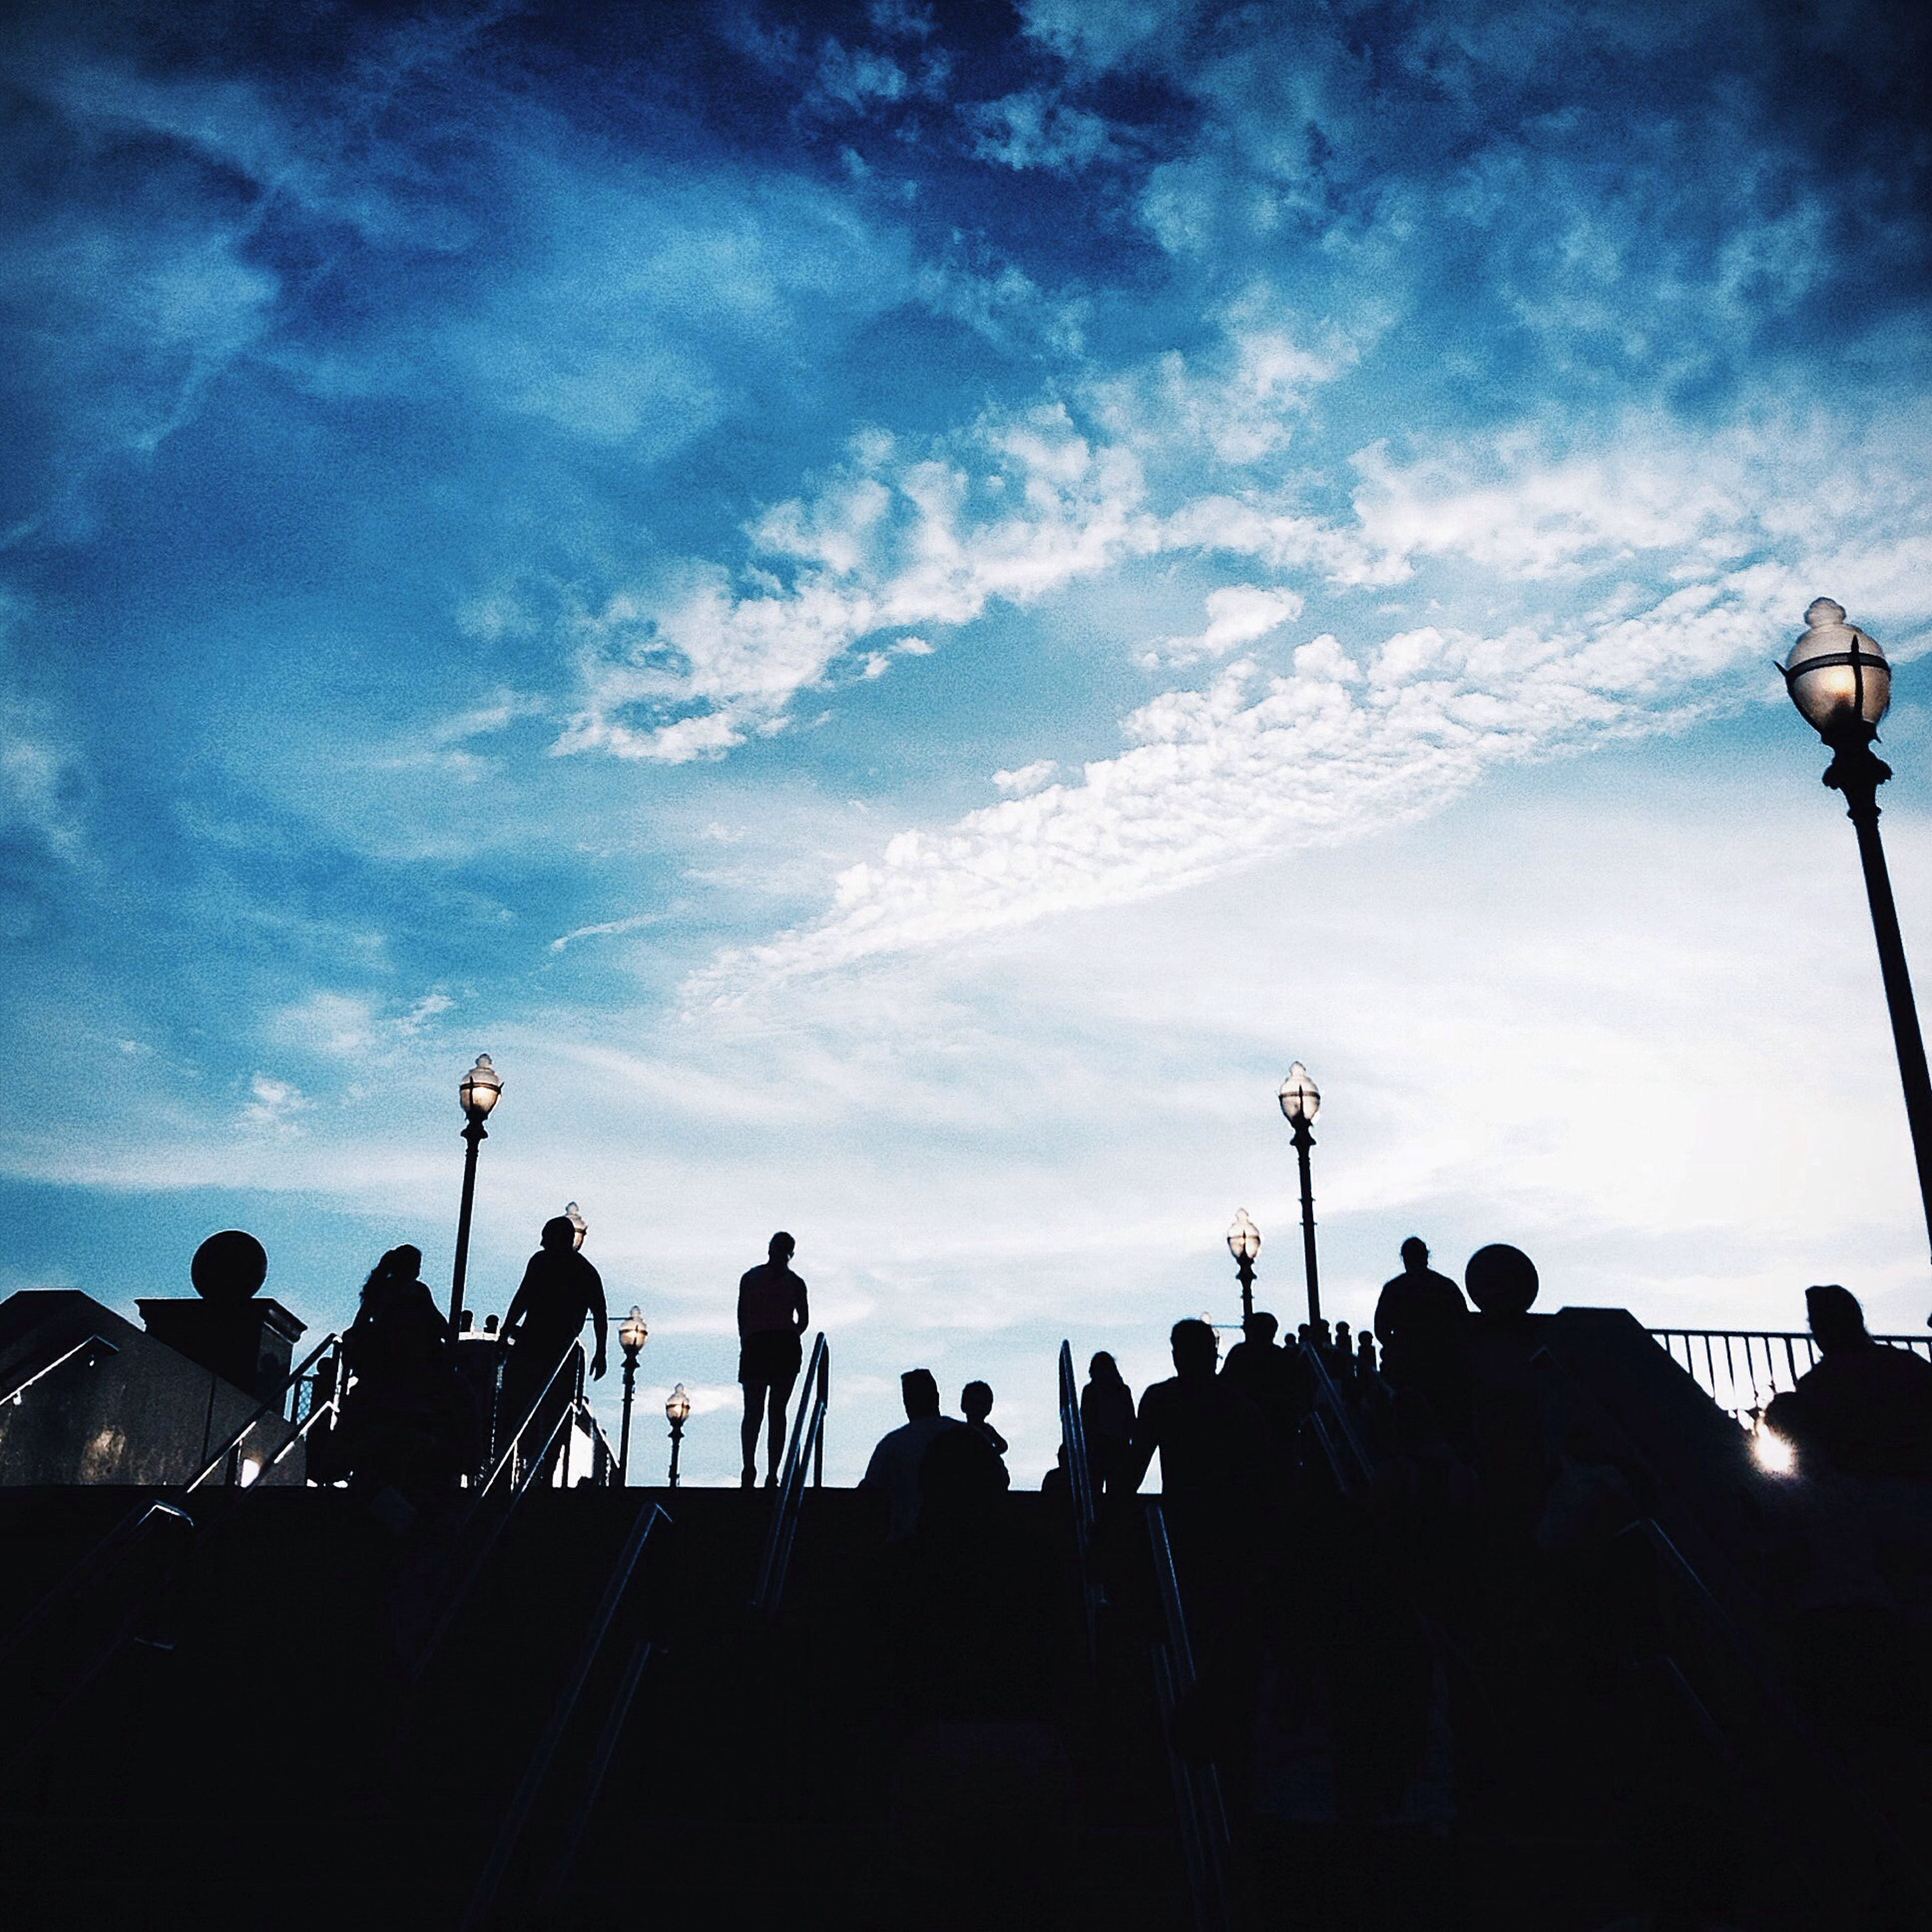 sky, silhouette, low angle view, large group of people, cloud - sky, street light, men, dusk, cloud, blue, person, lifestyles, lighting equipment, leisure activity, outdoors, cloudy, nature, mixed age range, built structure